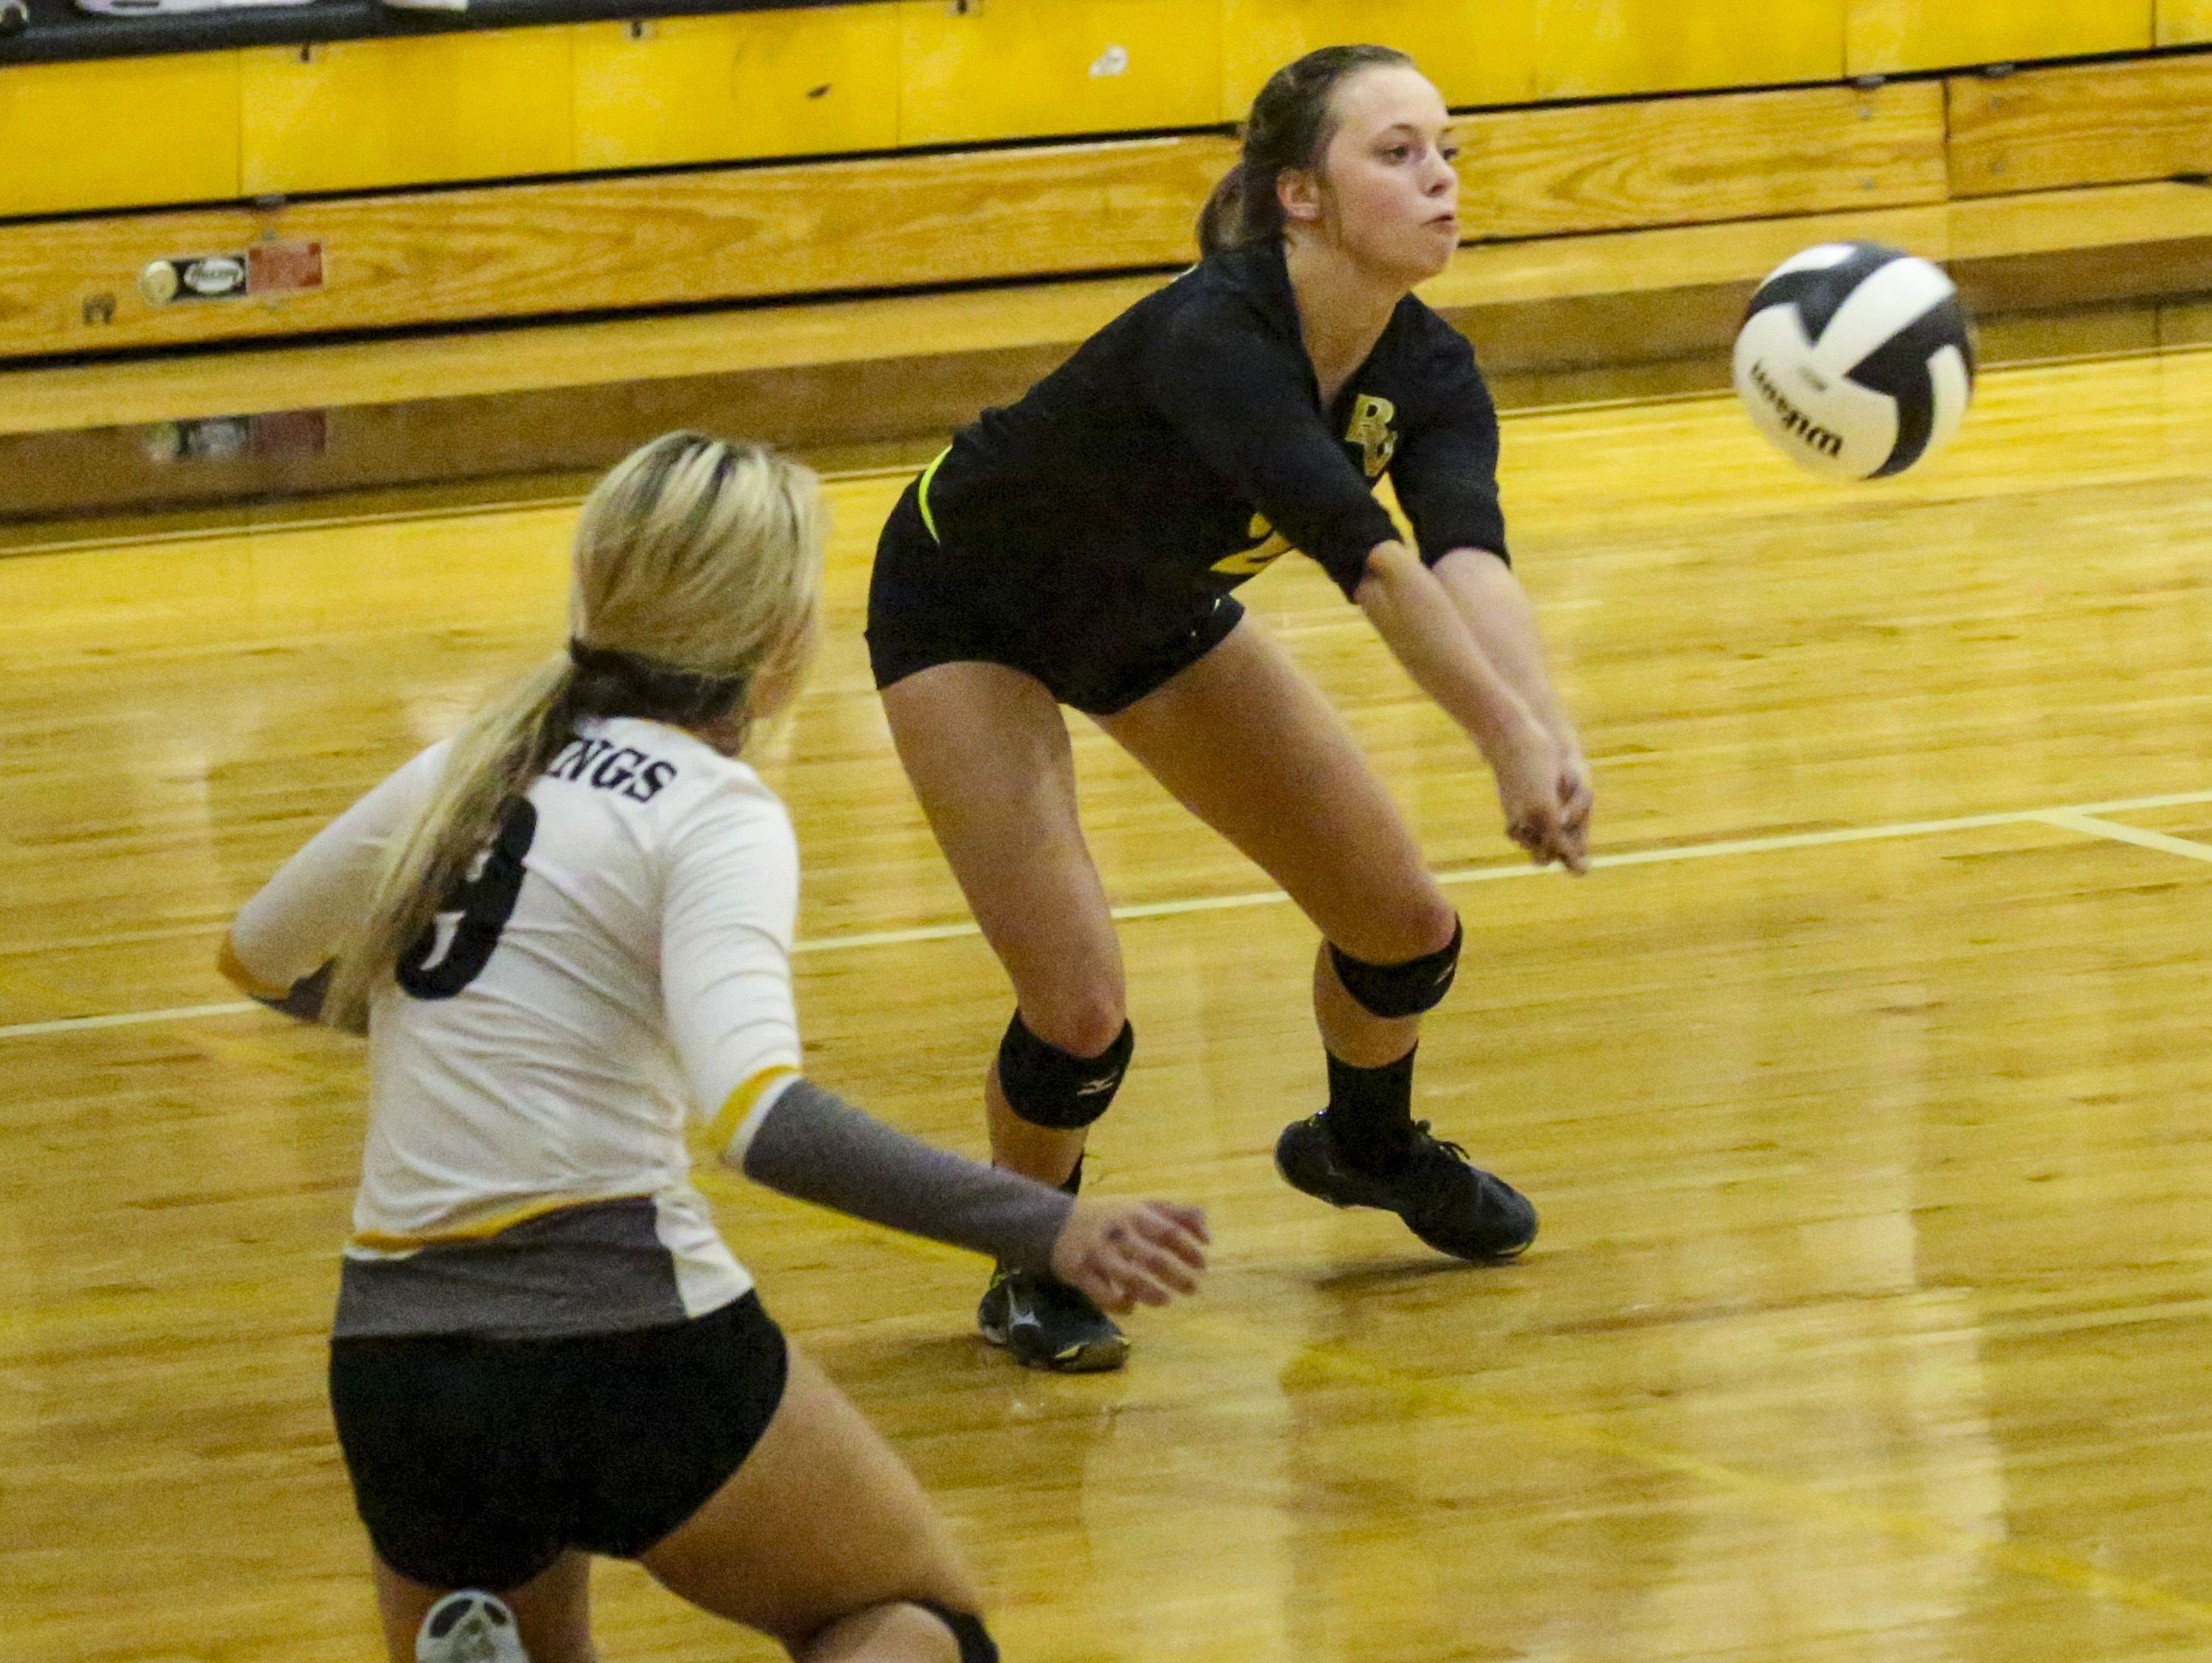 Bishop Verot's Kelsey Sullivan digs the ball in the back row. Tampa Academy of Holy Names played Bishop Verot in their Region 5A-3 volleyball quarterfinal.